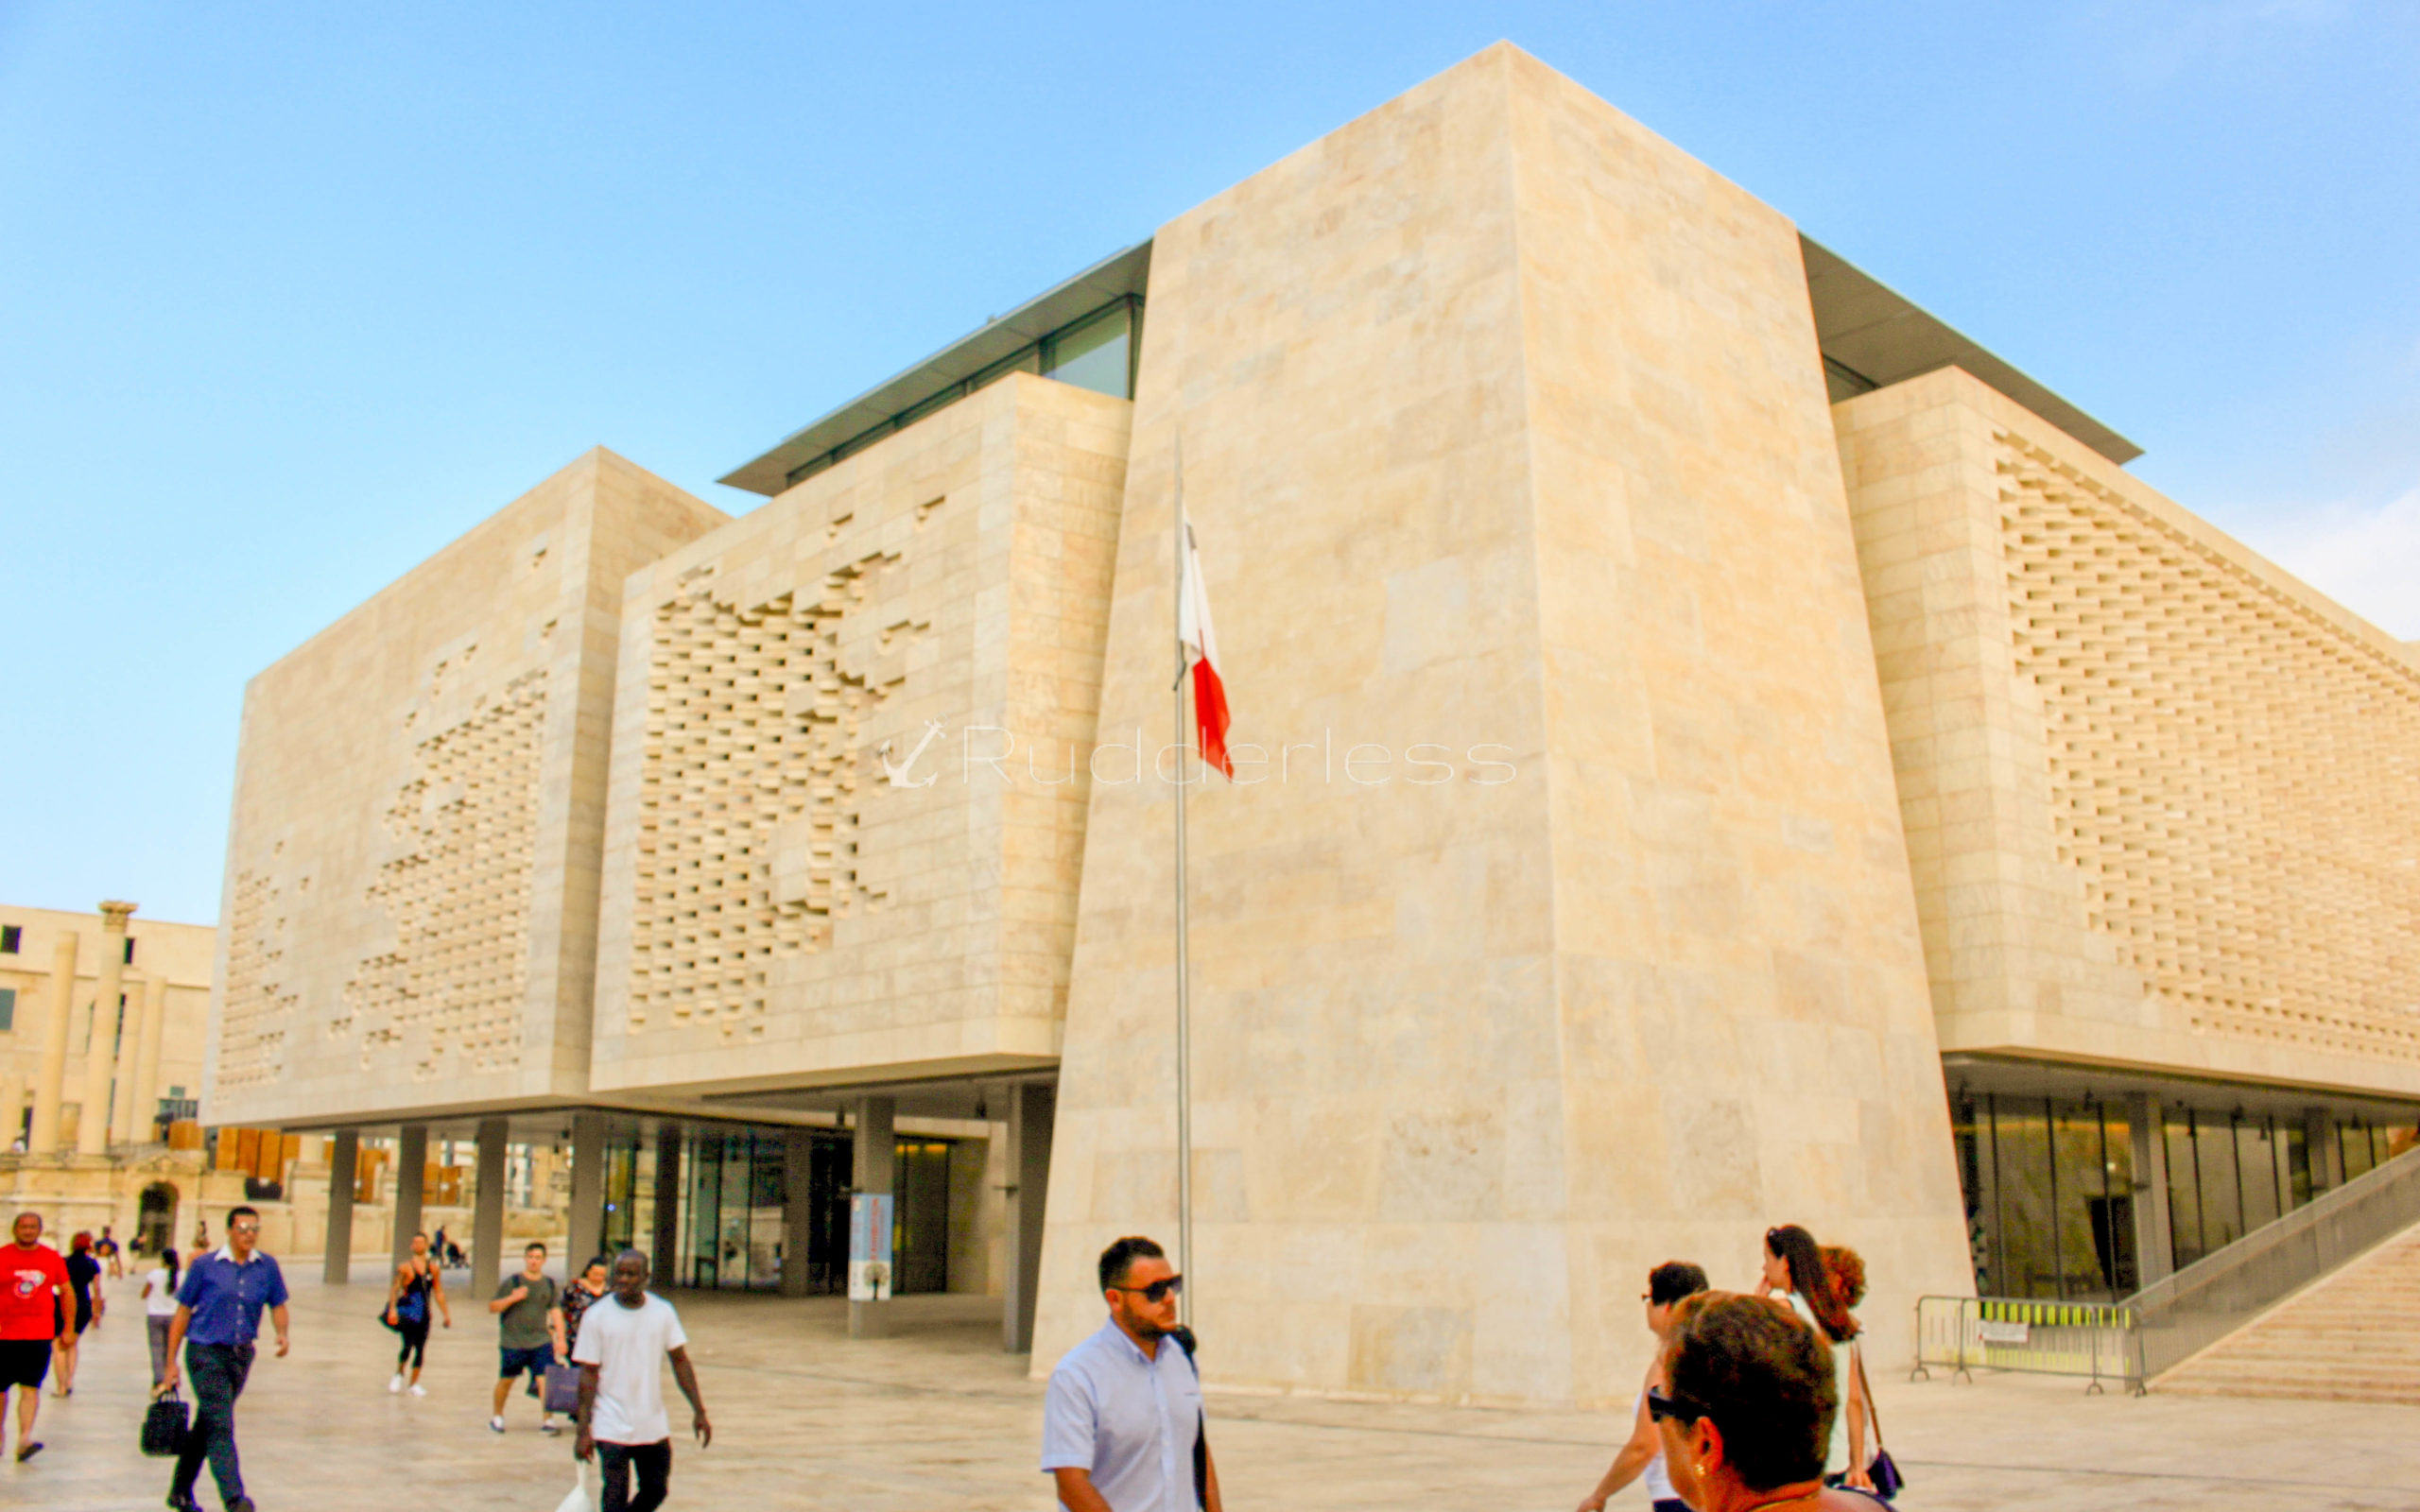 valletta malts things to do - NEW PARLIAMENT BUILDING